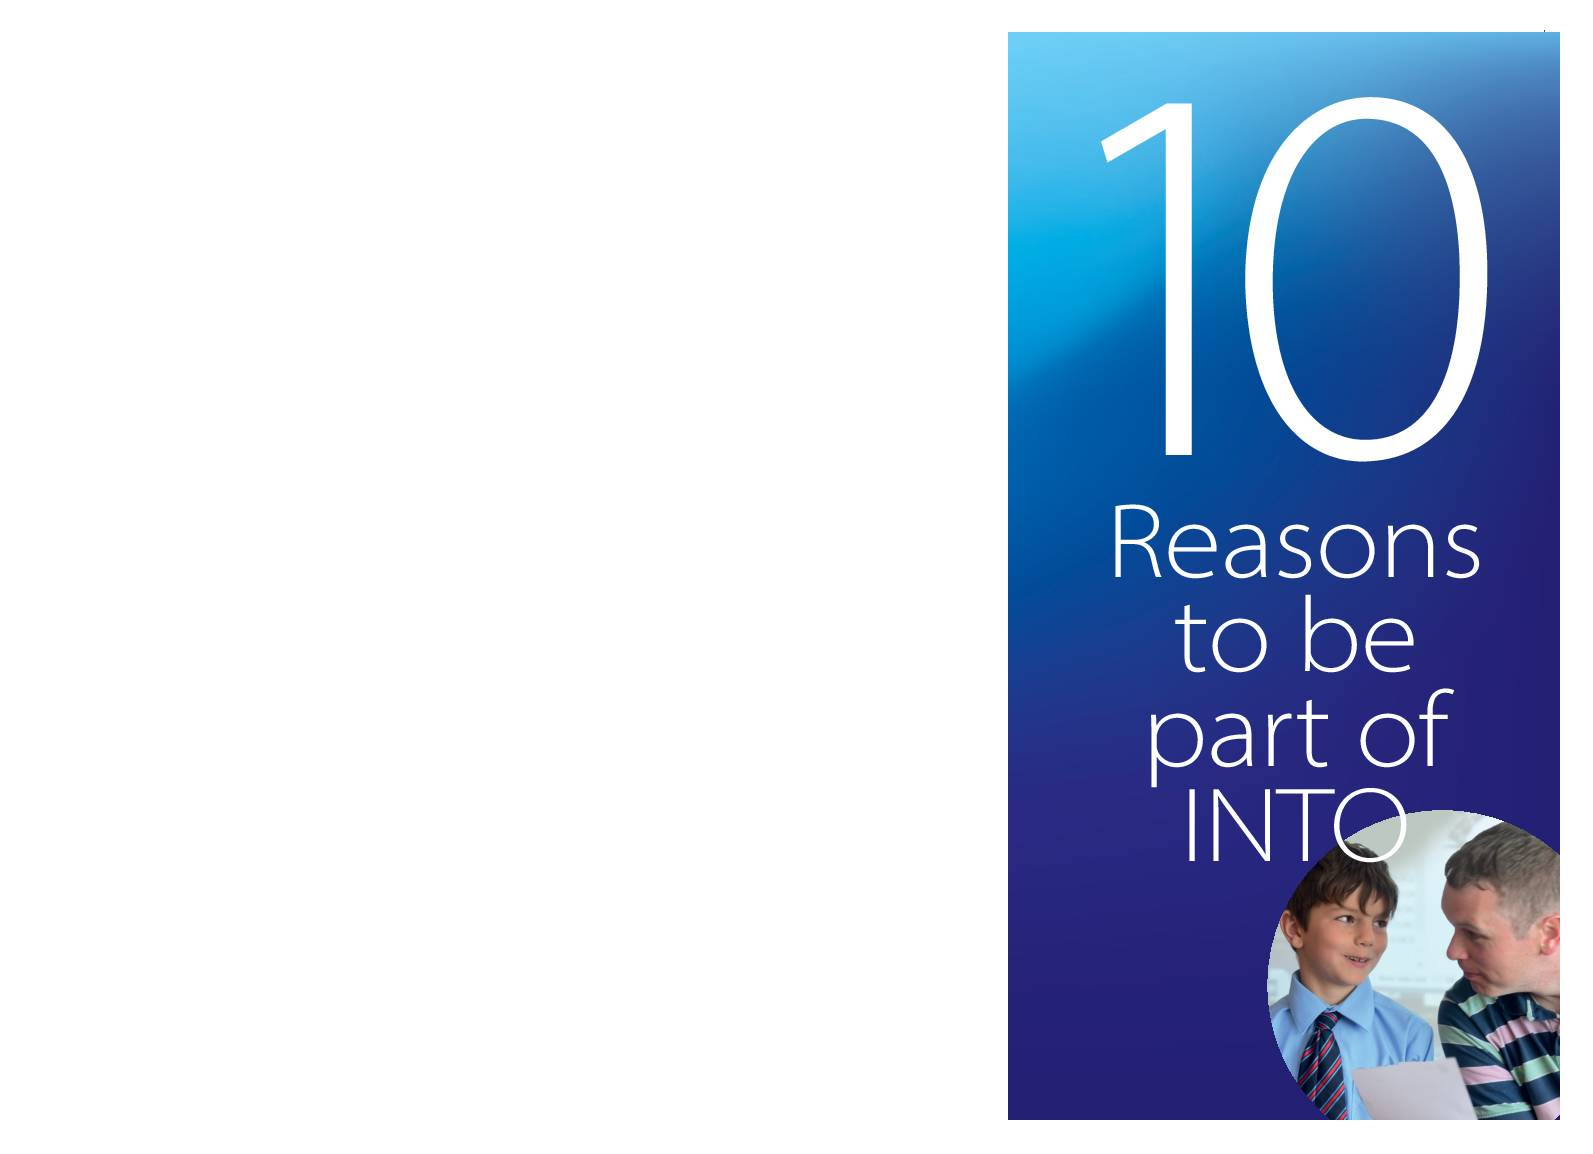 10 Reasons to be Part of INTO